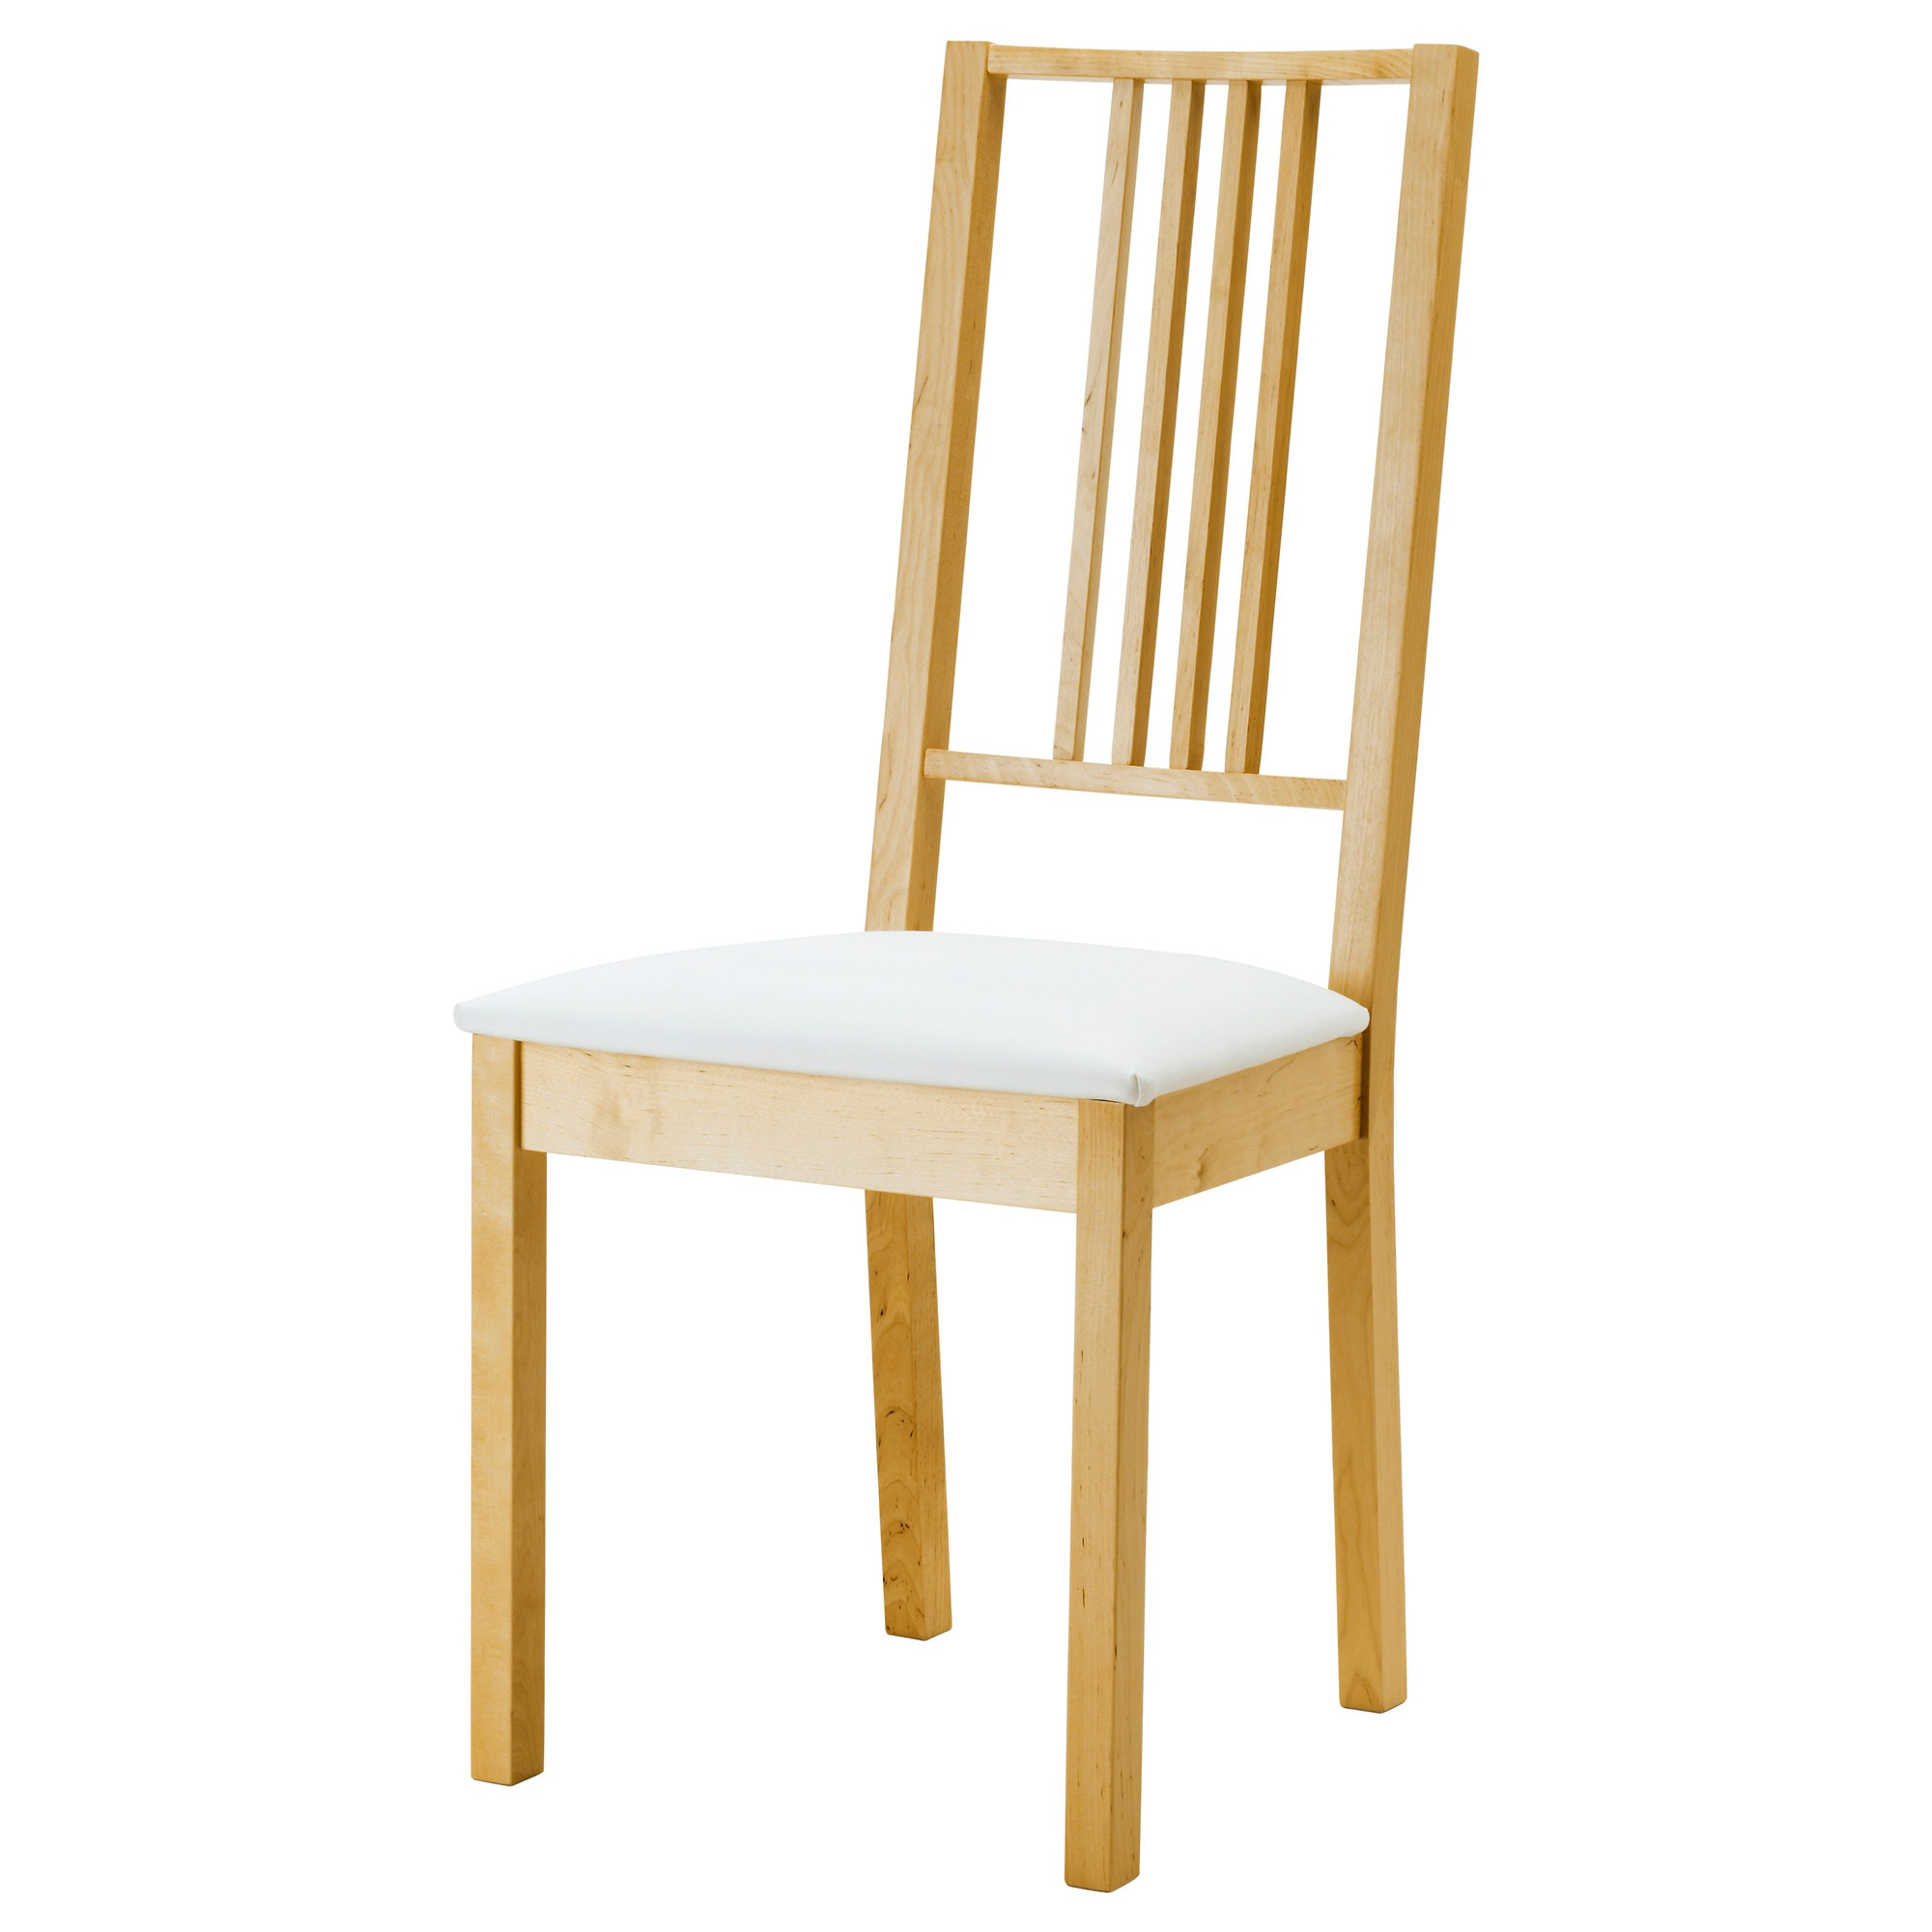 B–RJE Chair IKEA